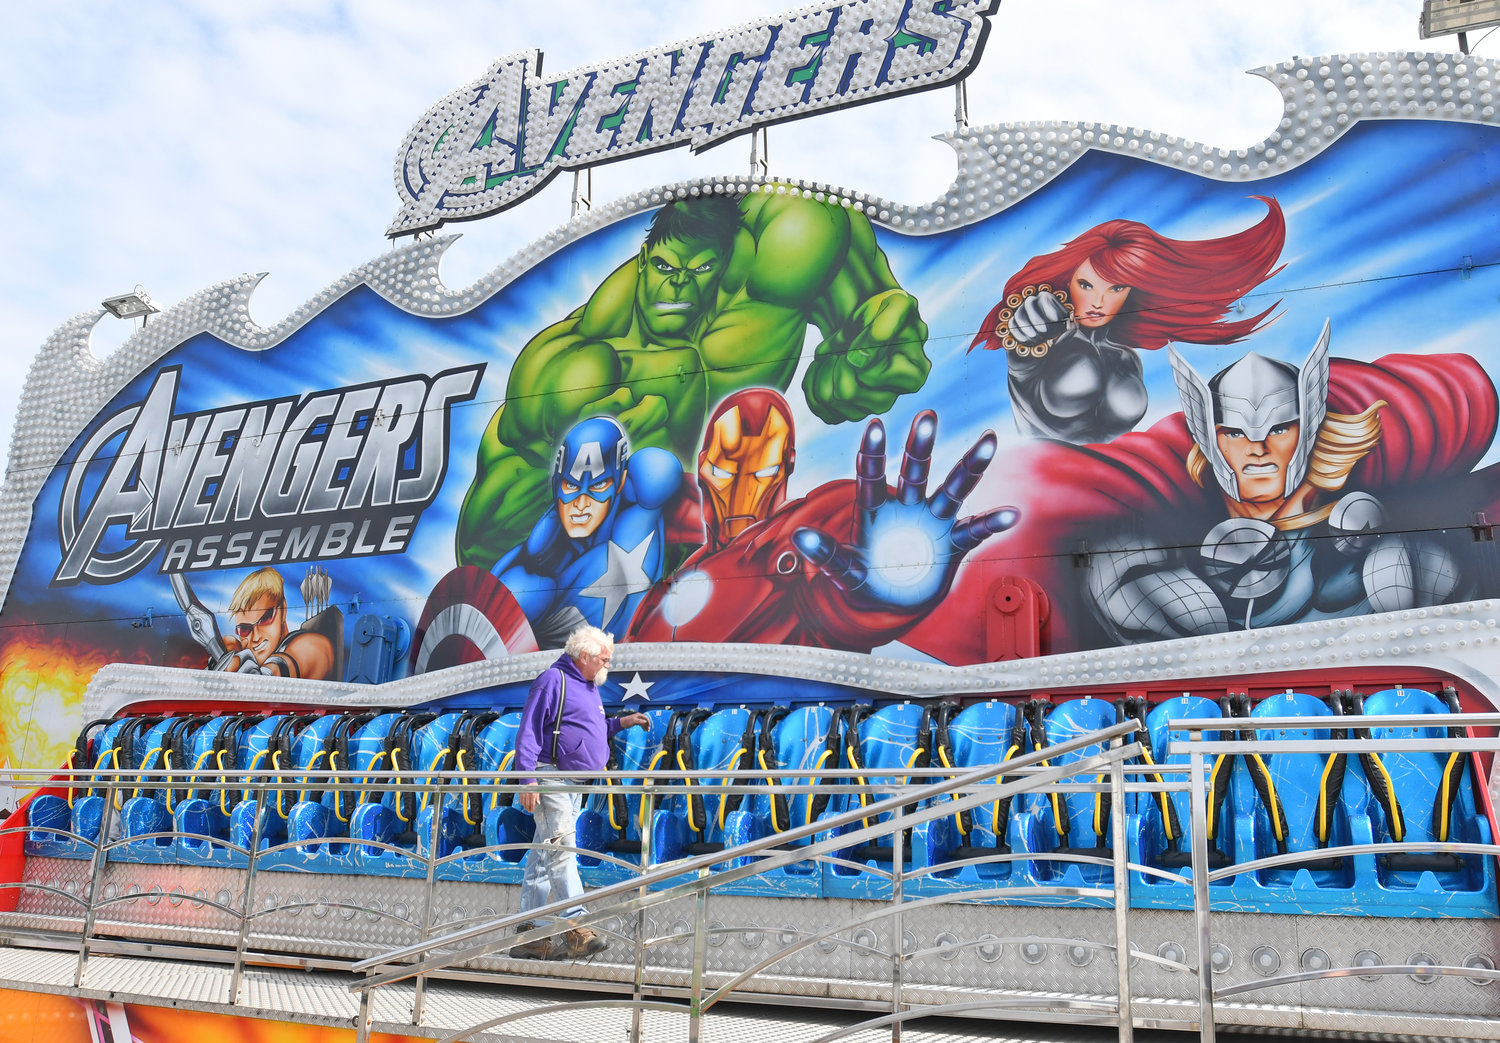 READY FOR RCS FESTIVAL — Scott Gardner, ride supervisor for the Main Event Amusements company of Camillus, looks over the Avengers ride that has been set up among various activities for the Rome Catholic School Spring Festival fundraiser this weekend. The festival will be at the former RCS grounds.